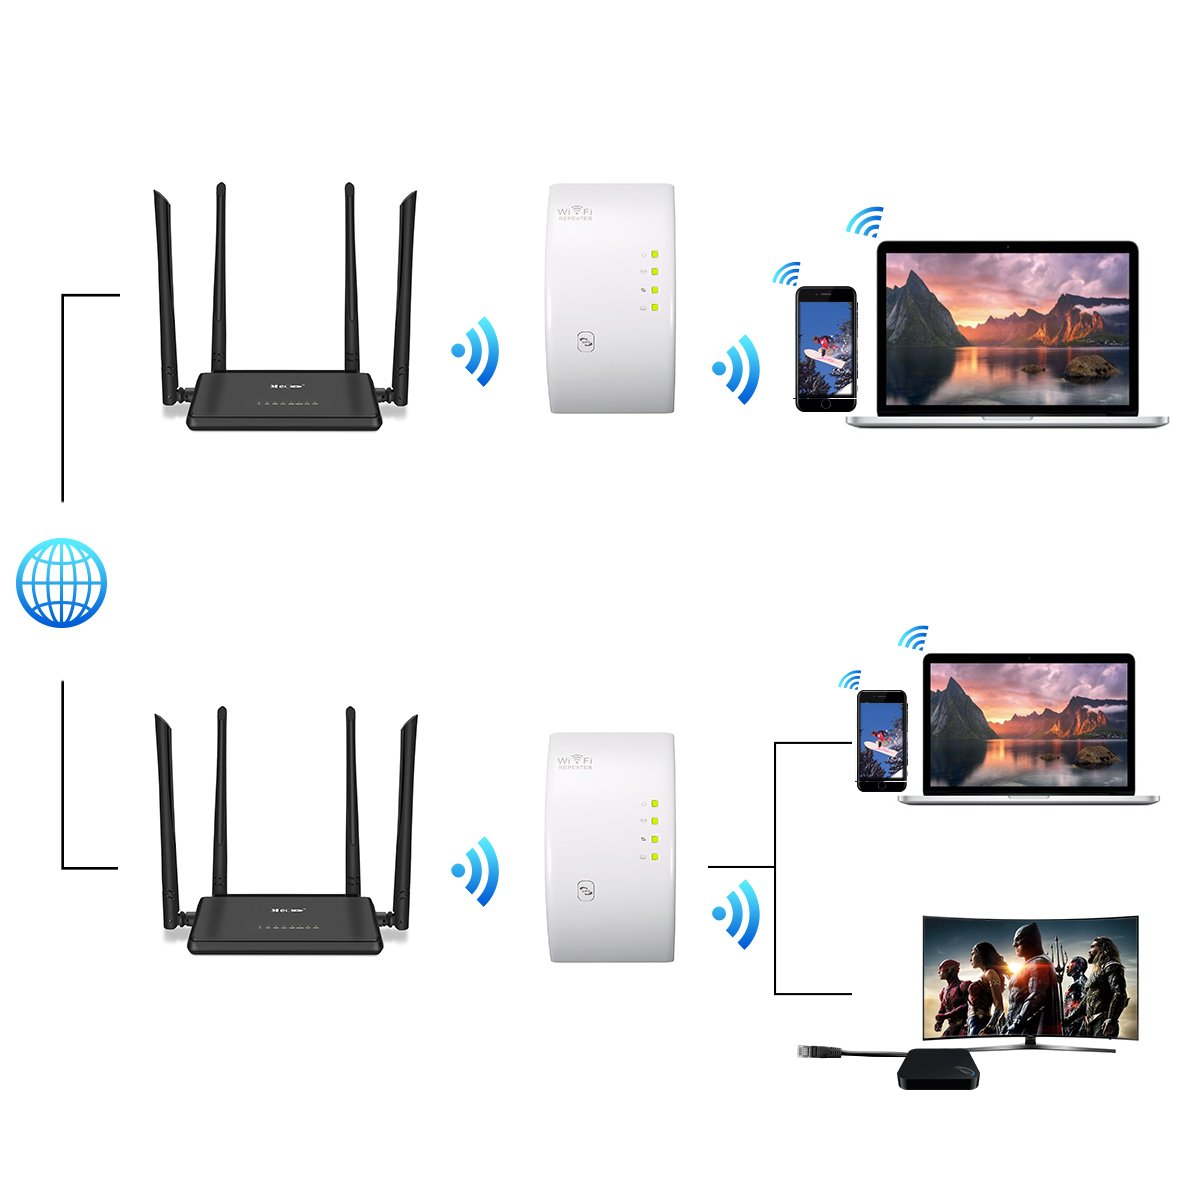 Wlan Repeater, MECO LAN-Port WIFI Signalverstärker: Amazon.de ...